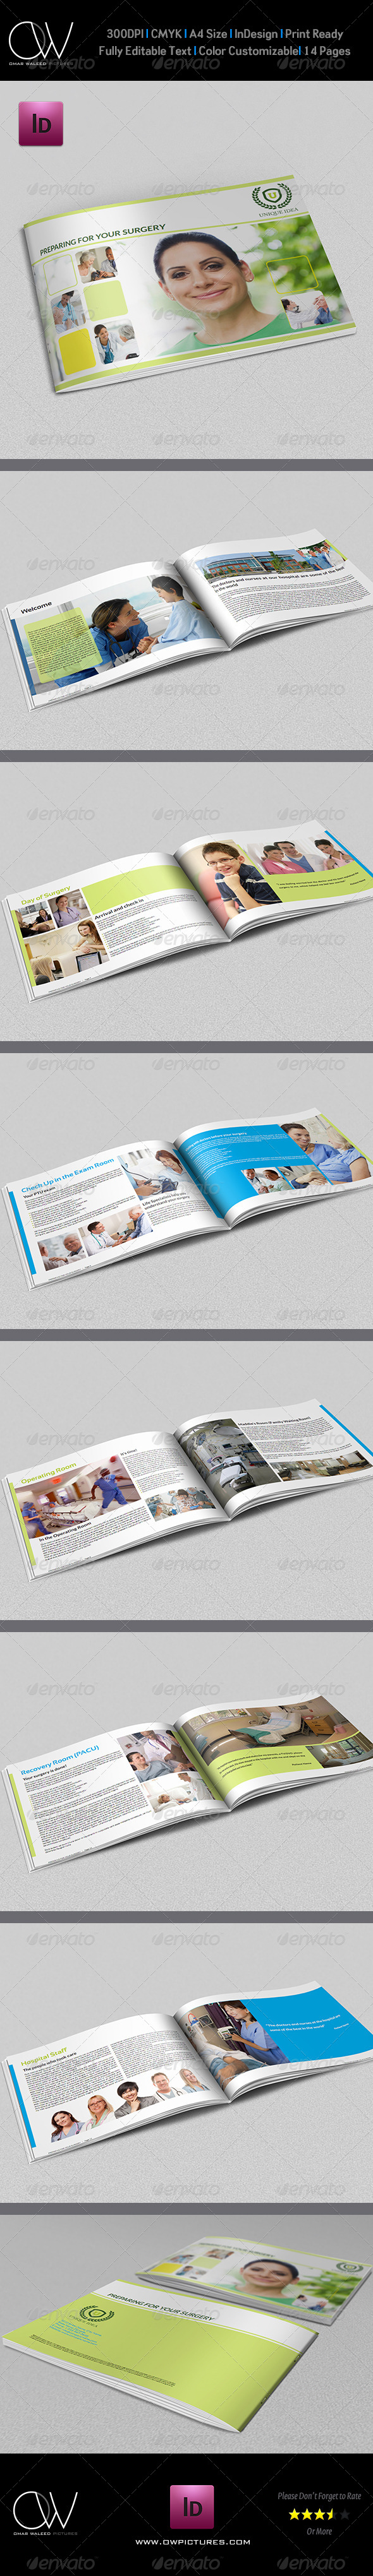 GraphicRiver Preparing for Your Surgery Brochure Template 5291927